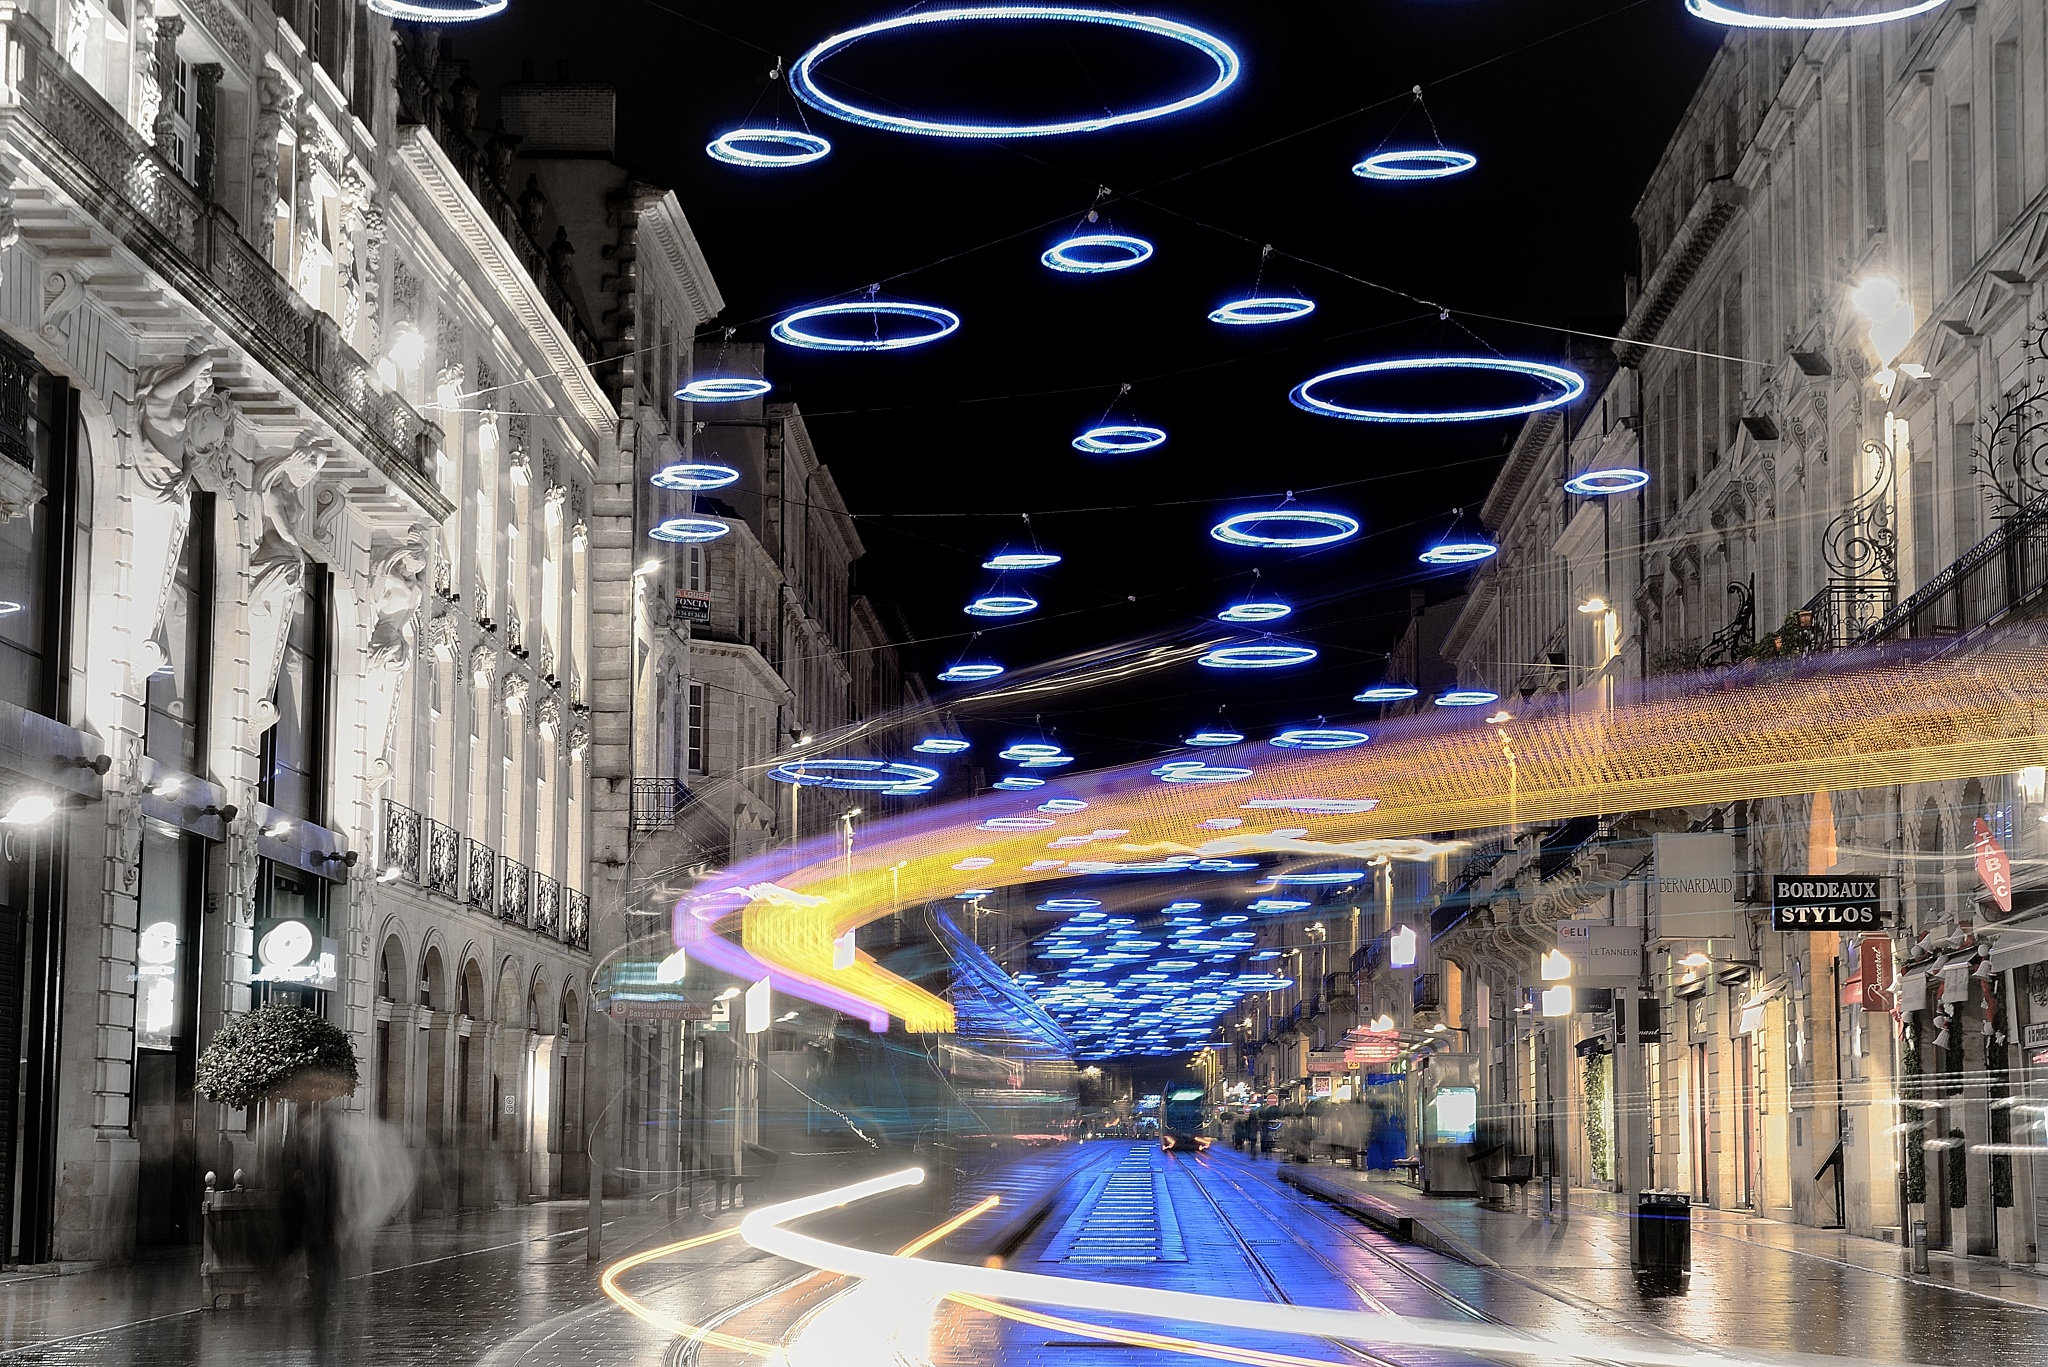 Bordeaux Christmas lights  by gorka